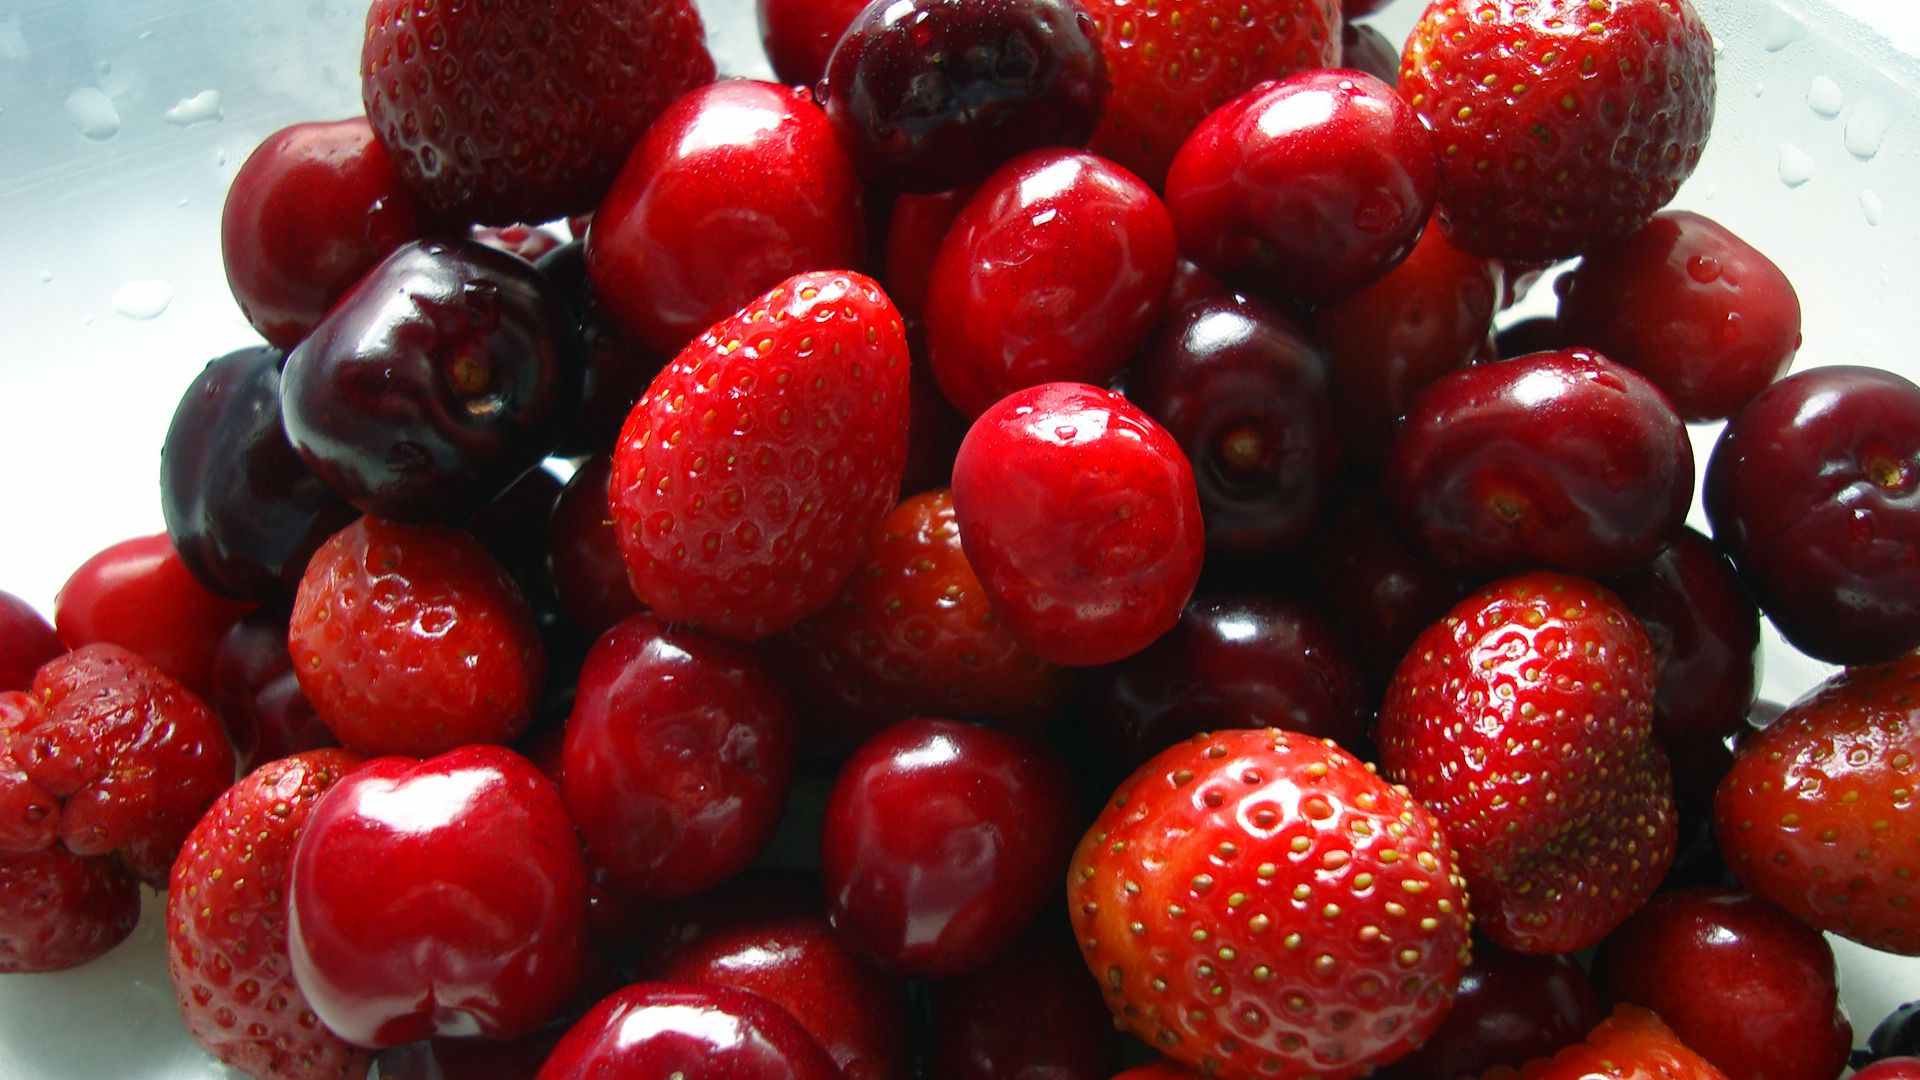 Fruits Lycopene Is Present In The Red Fruits And Vegetables Such As Red Fruit Red Fruit Fruits And Vegetables Images